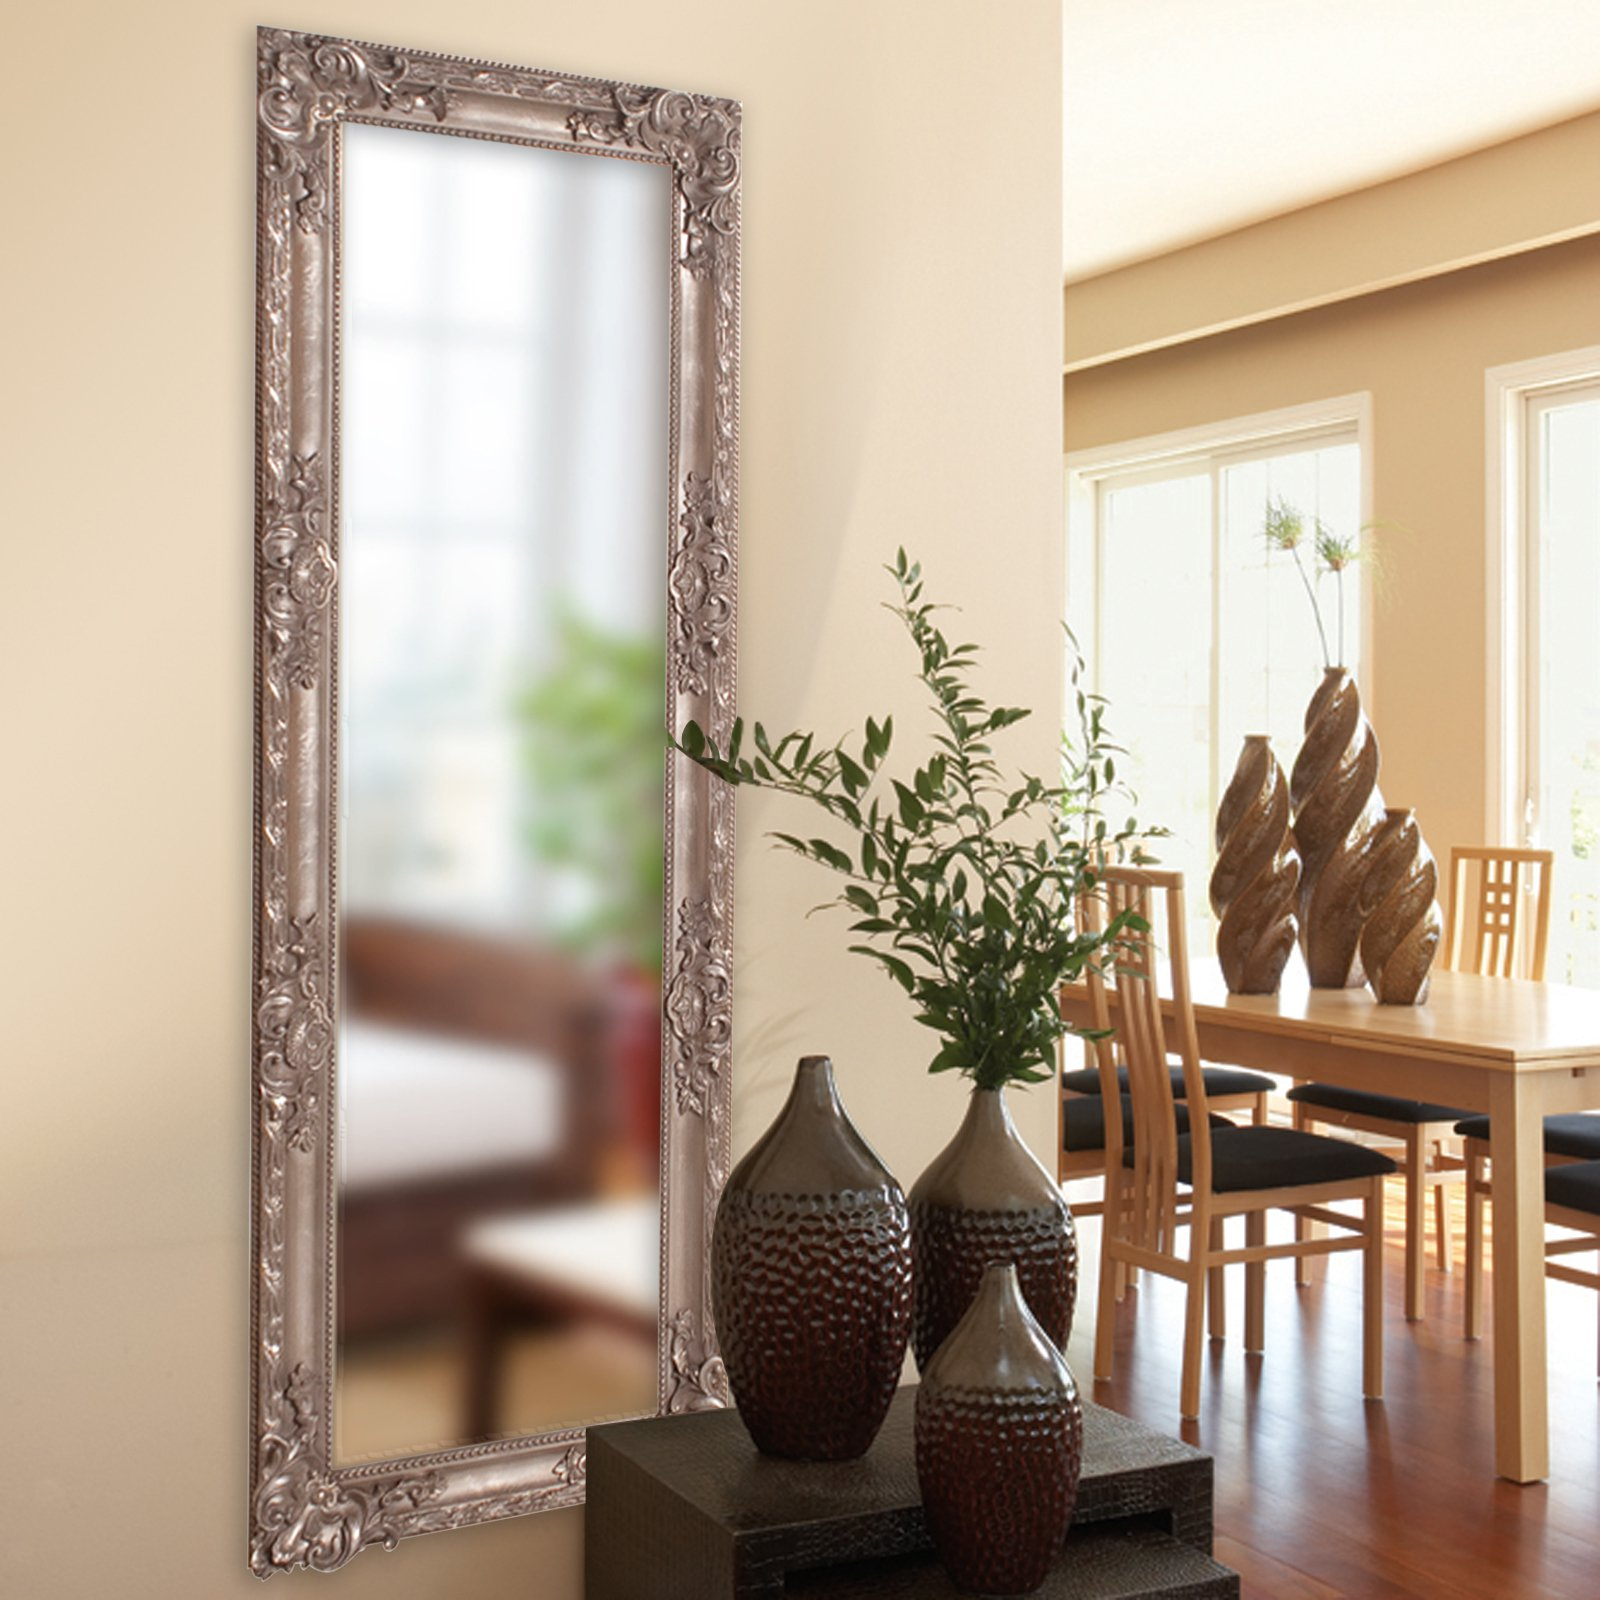 Genial Belham Living Carlos Full Length Wall Mirror   23W X 62H In.